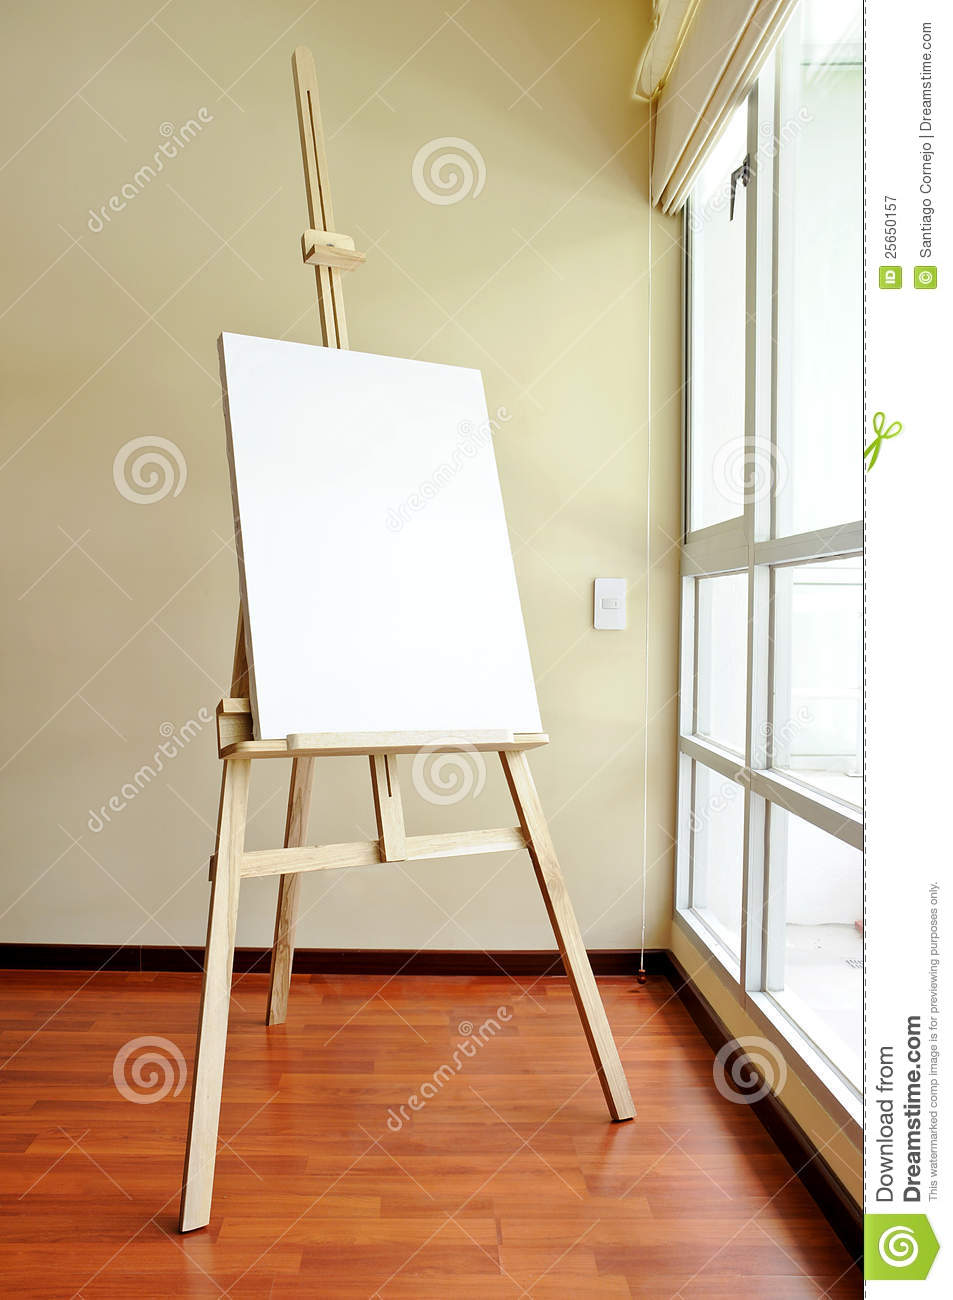 Parquet Color Blank Canvas On A Wooden Tripod In The Studio Stock Image